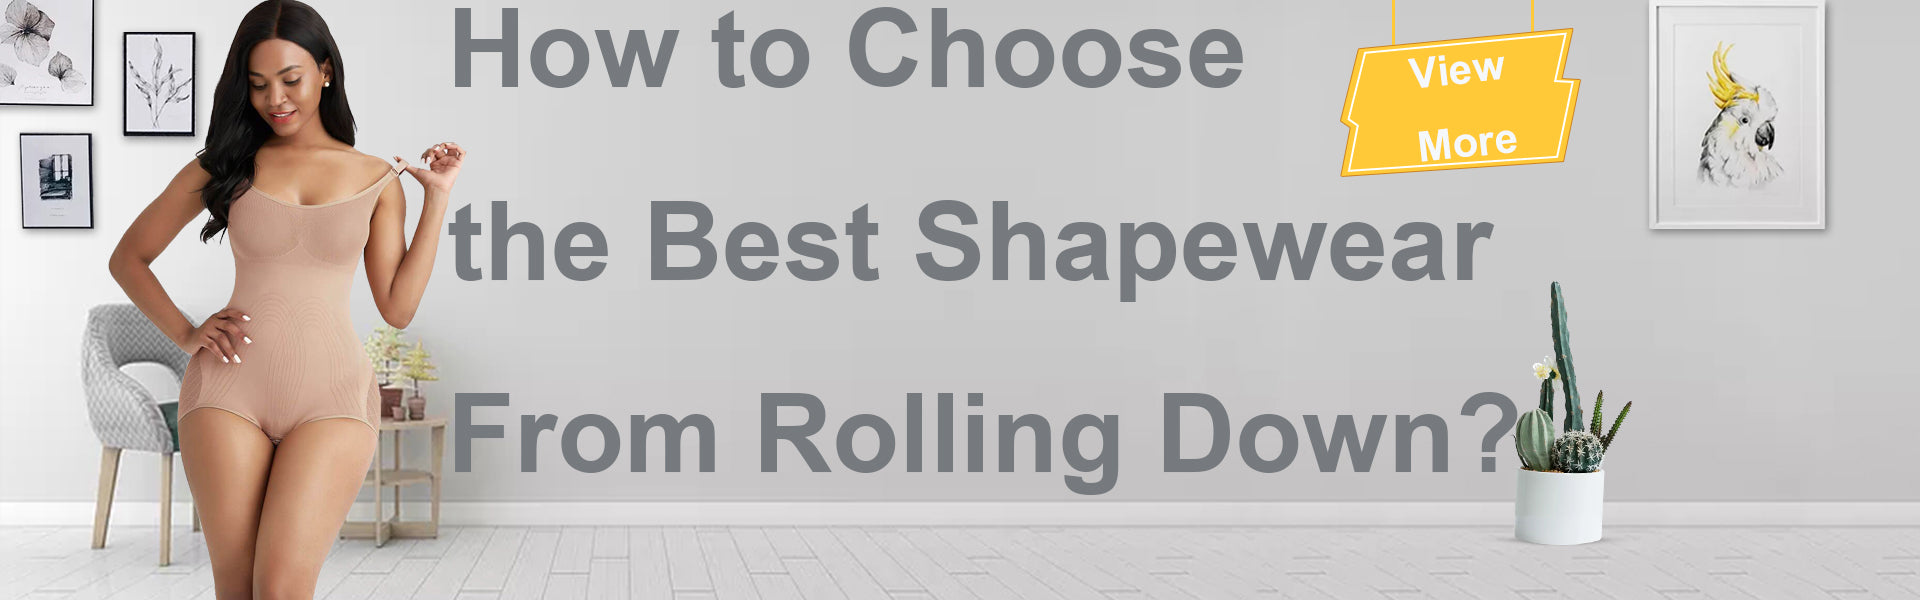 How to Choose the Best Shapewear From Rolling Down?